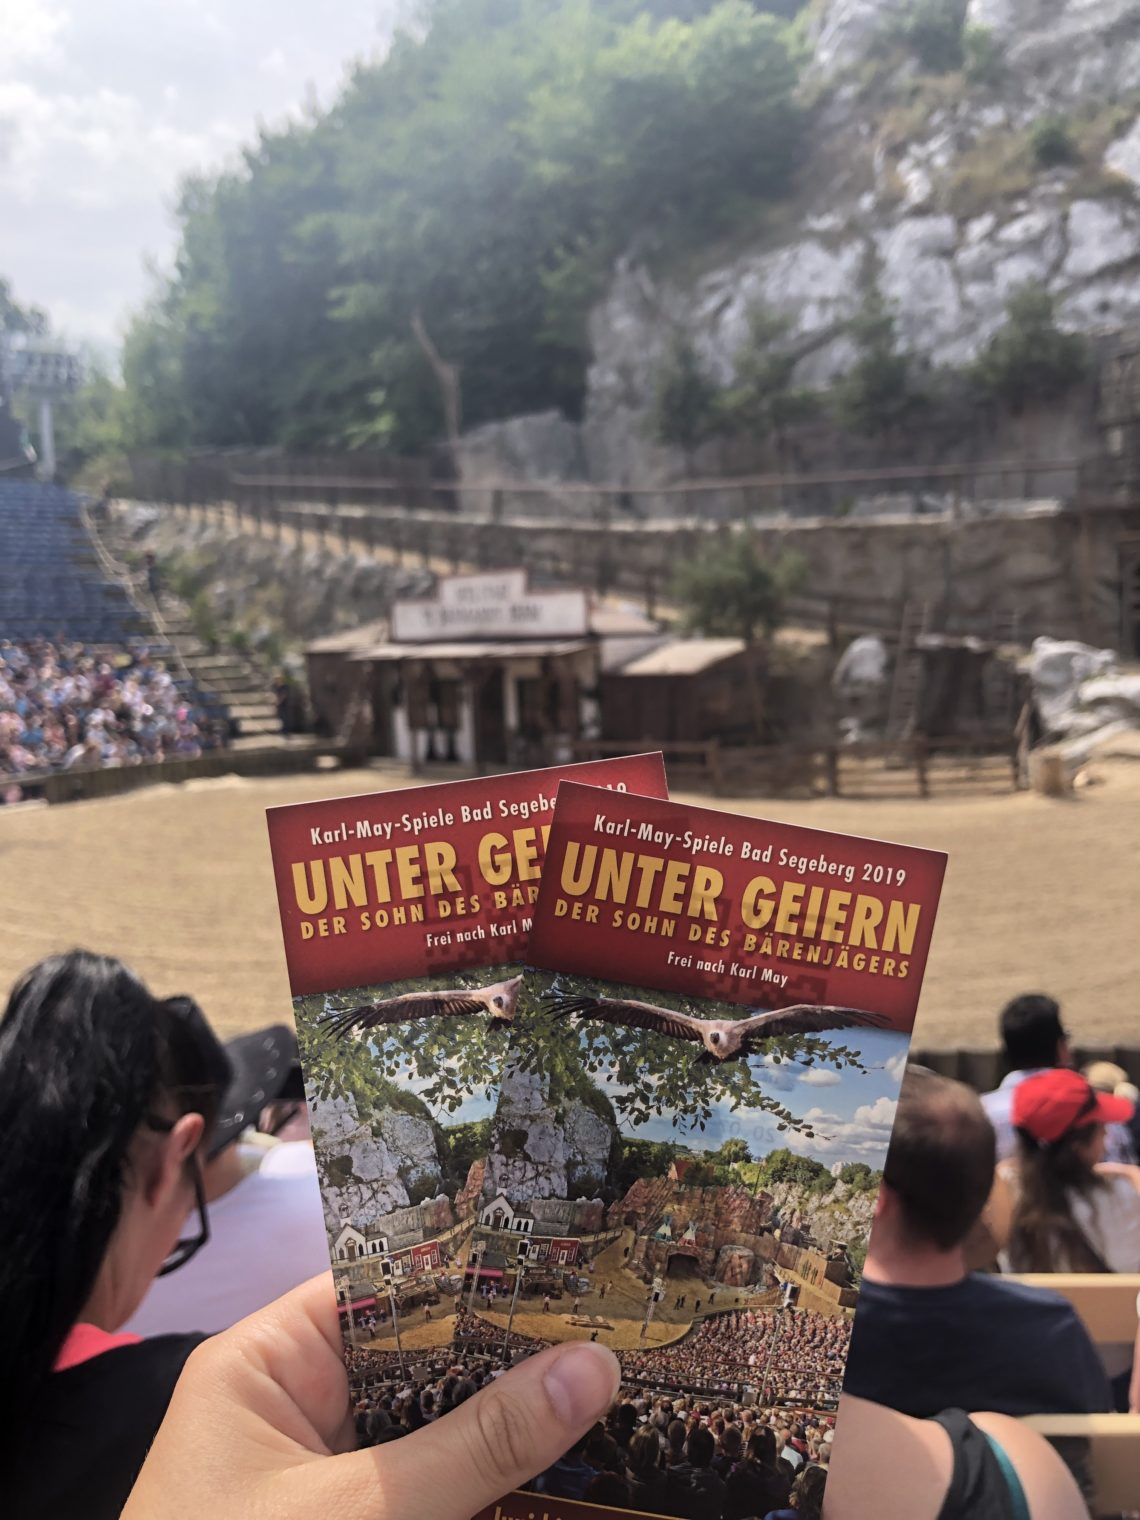 Karl May Festspiele Bad Segeberg